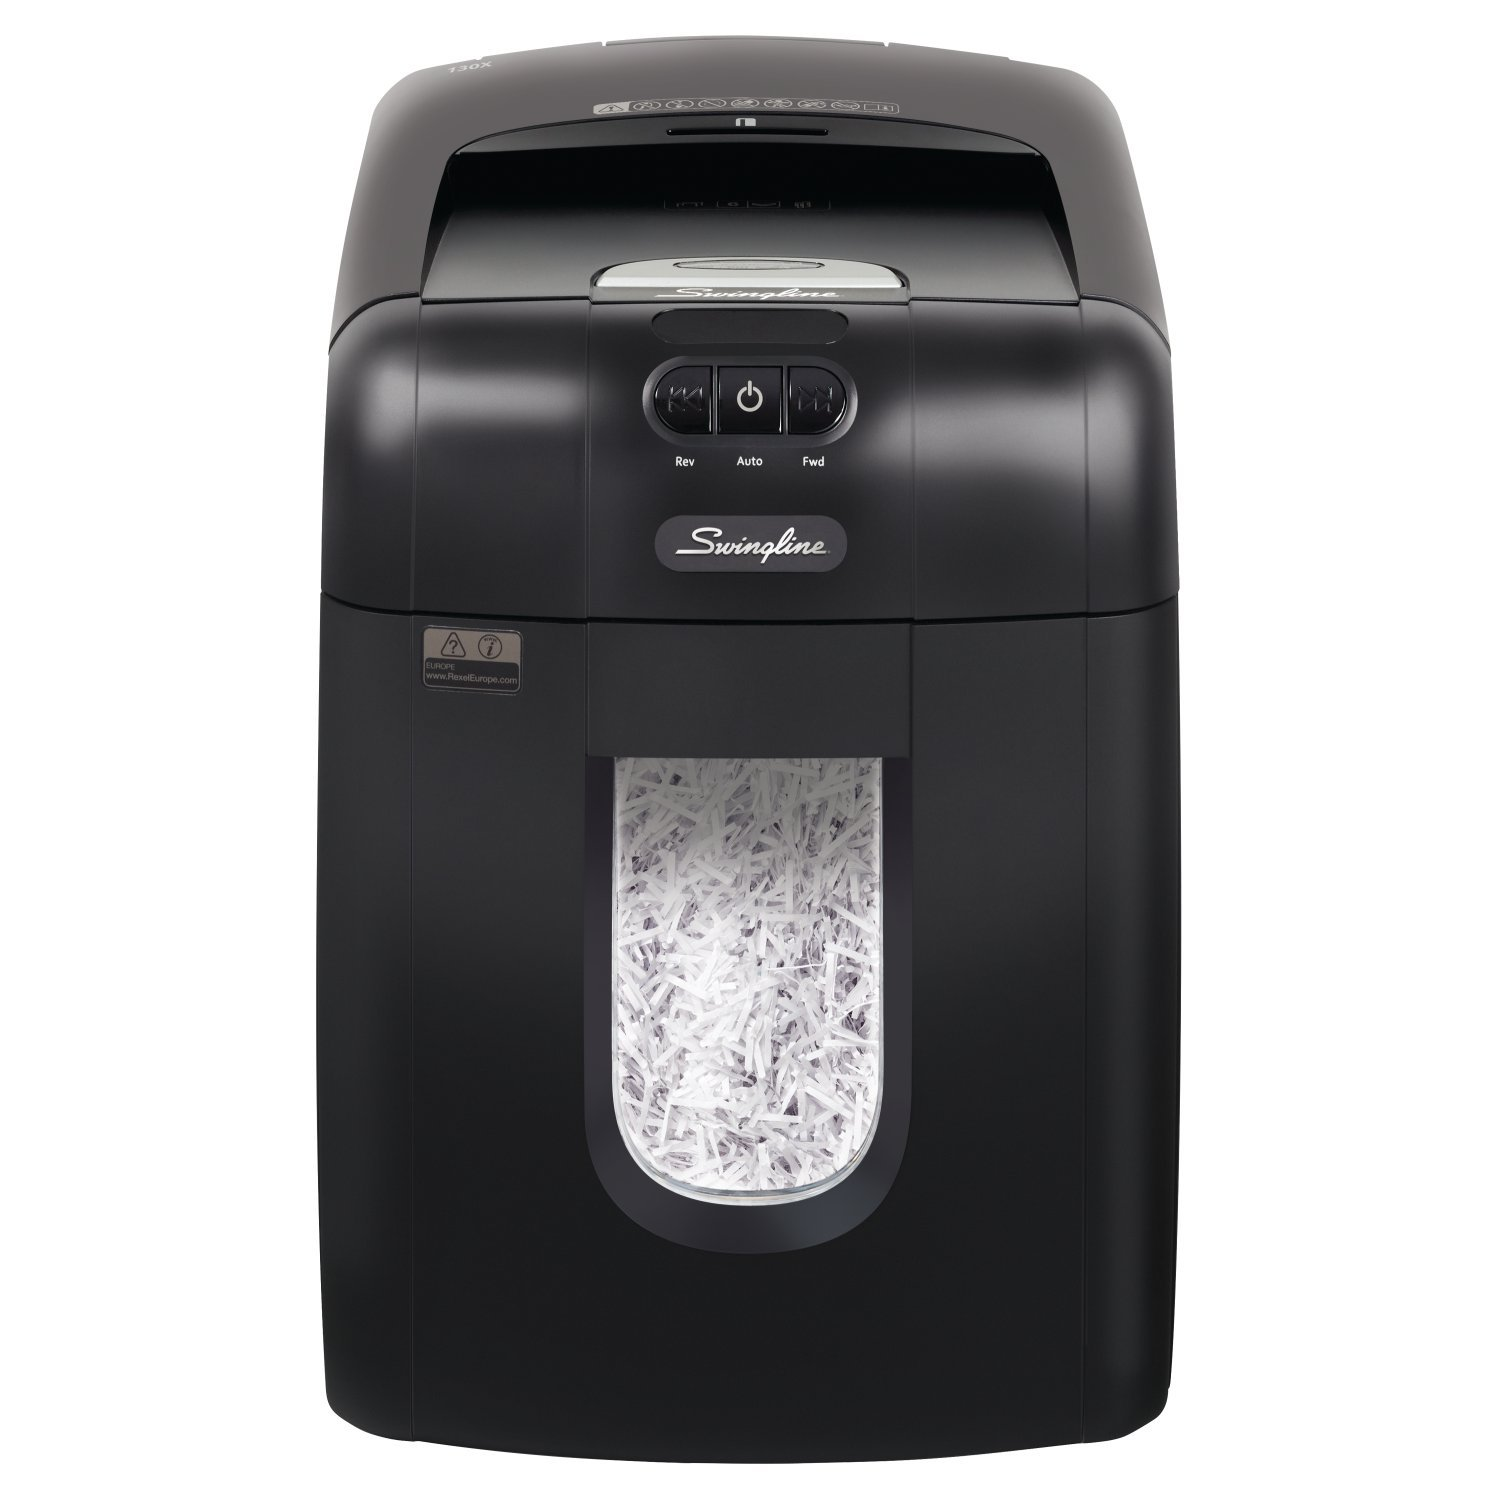 Swingline Paper Shredder, Auto Feed, 130 Sheet Capacity, Super Cross-Cut, 1-2 Users, Stack-and-Shred 130X (1757571) by Swingline